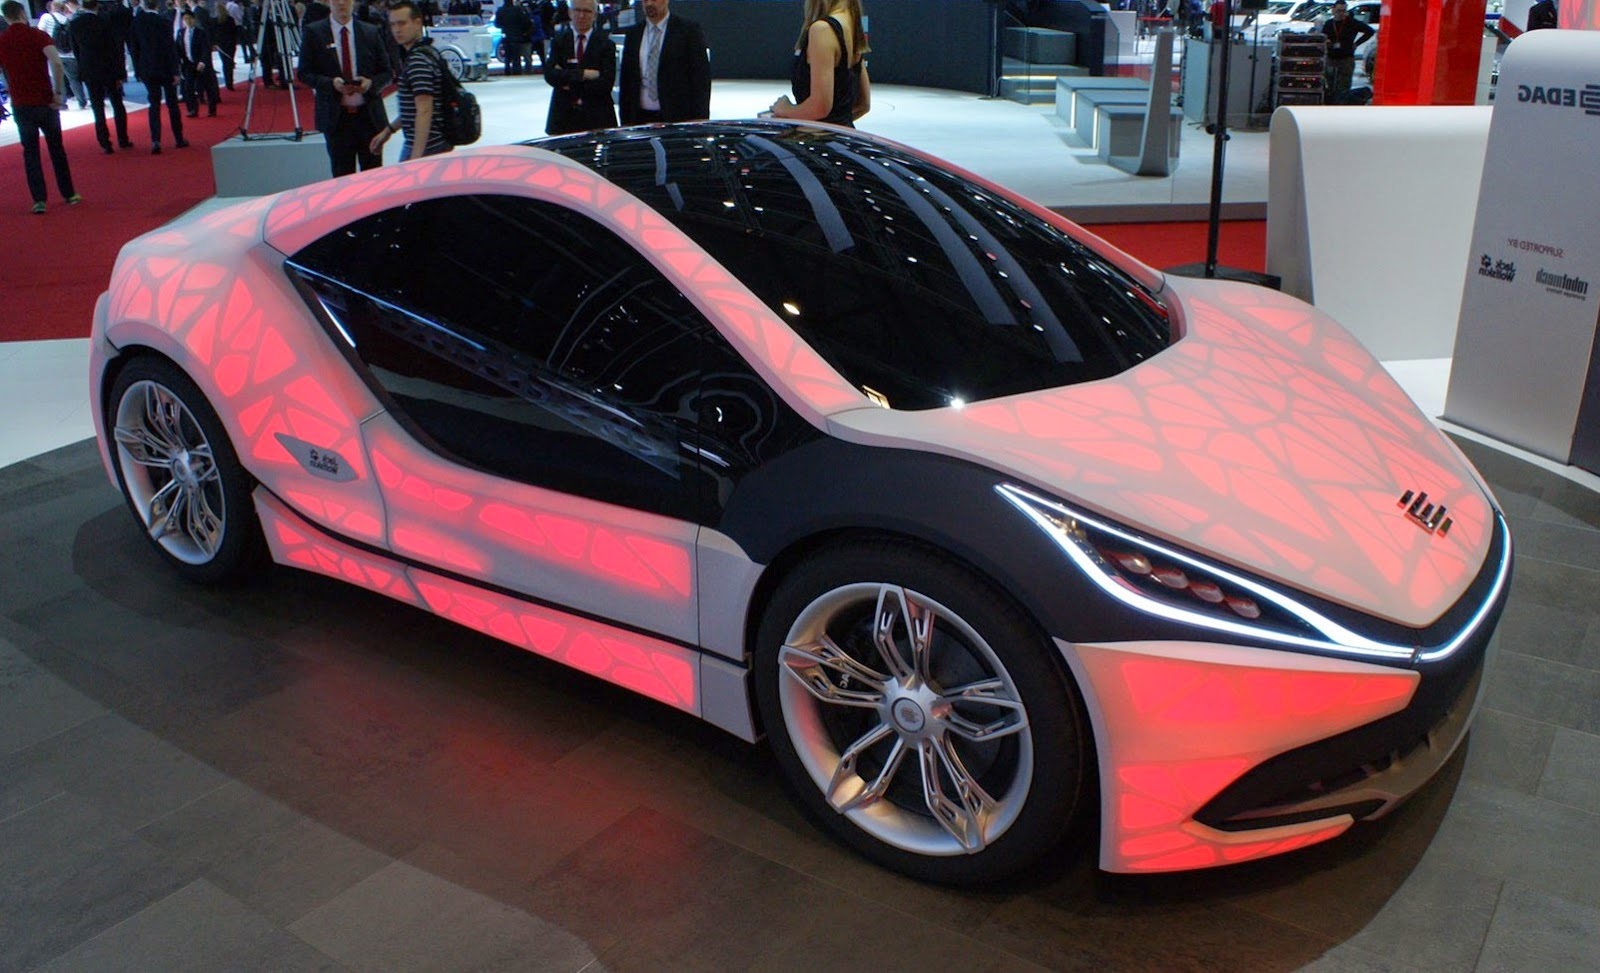 ten quirky cars  u0026 brands from 2015 geneva show you should know